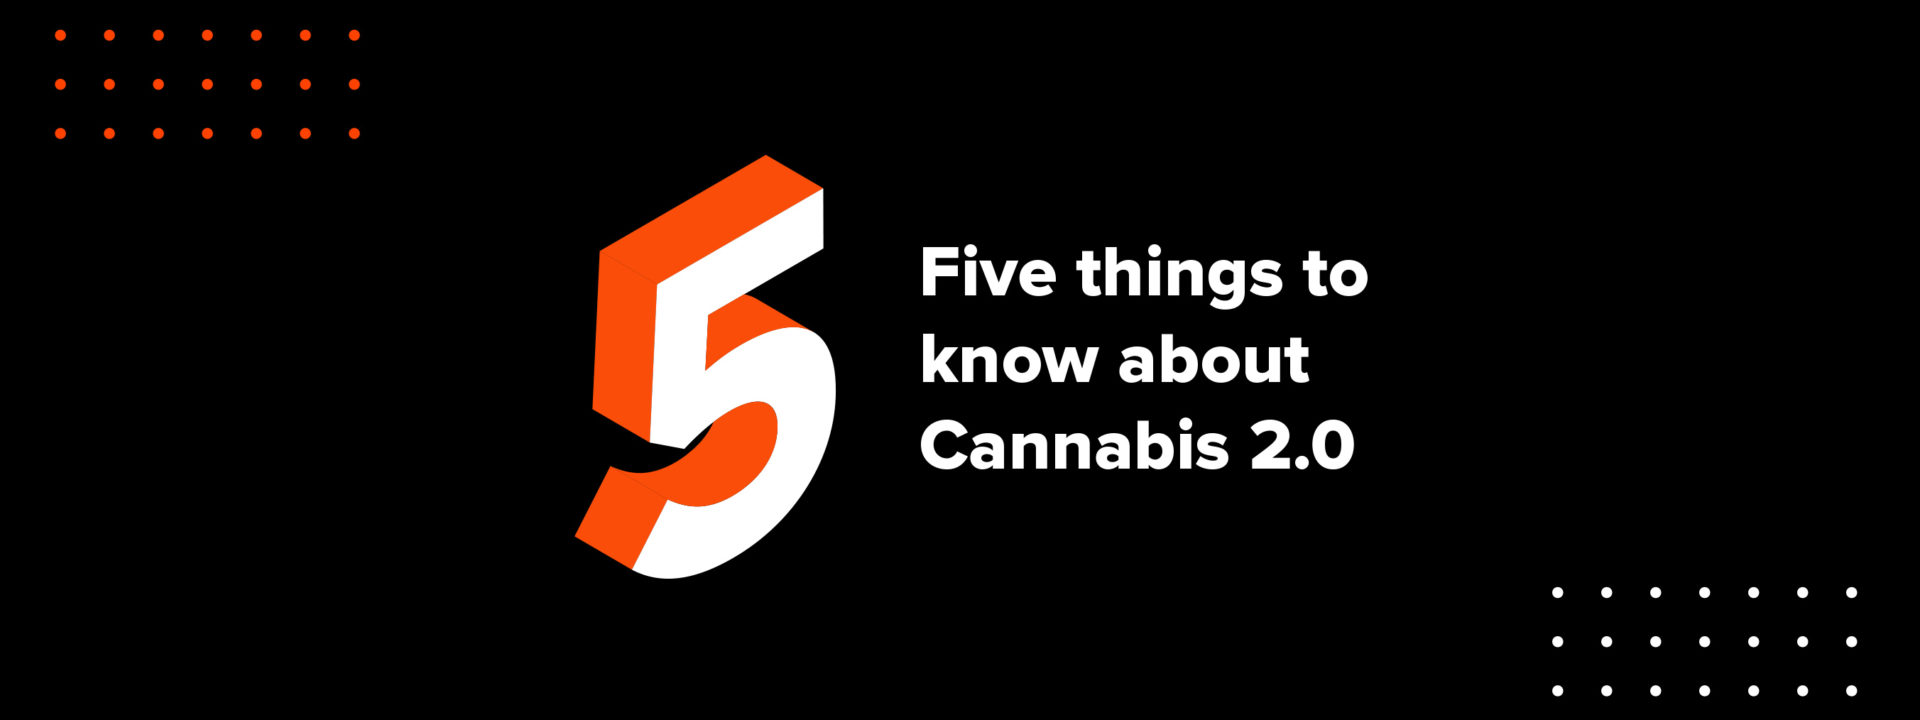 Top Five Things To Know About Cannabis 2.0